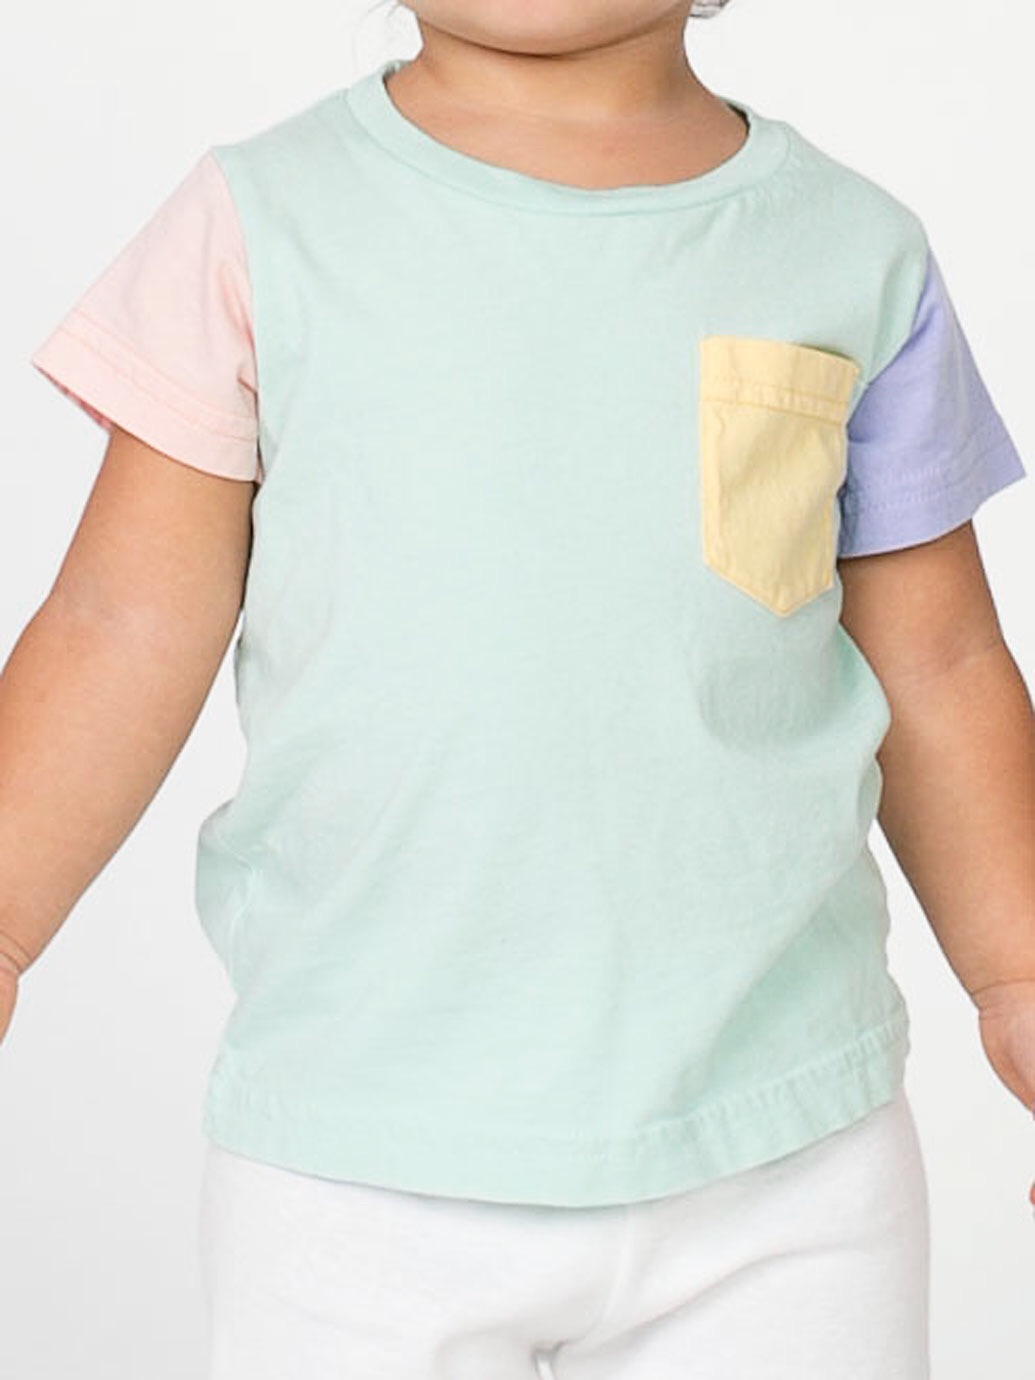 American Apparel T-shirt   - $14 (I got on sale at  Zulily  for $8.99)